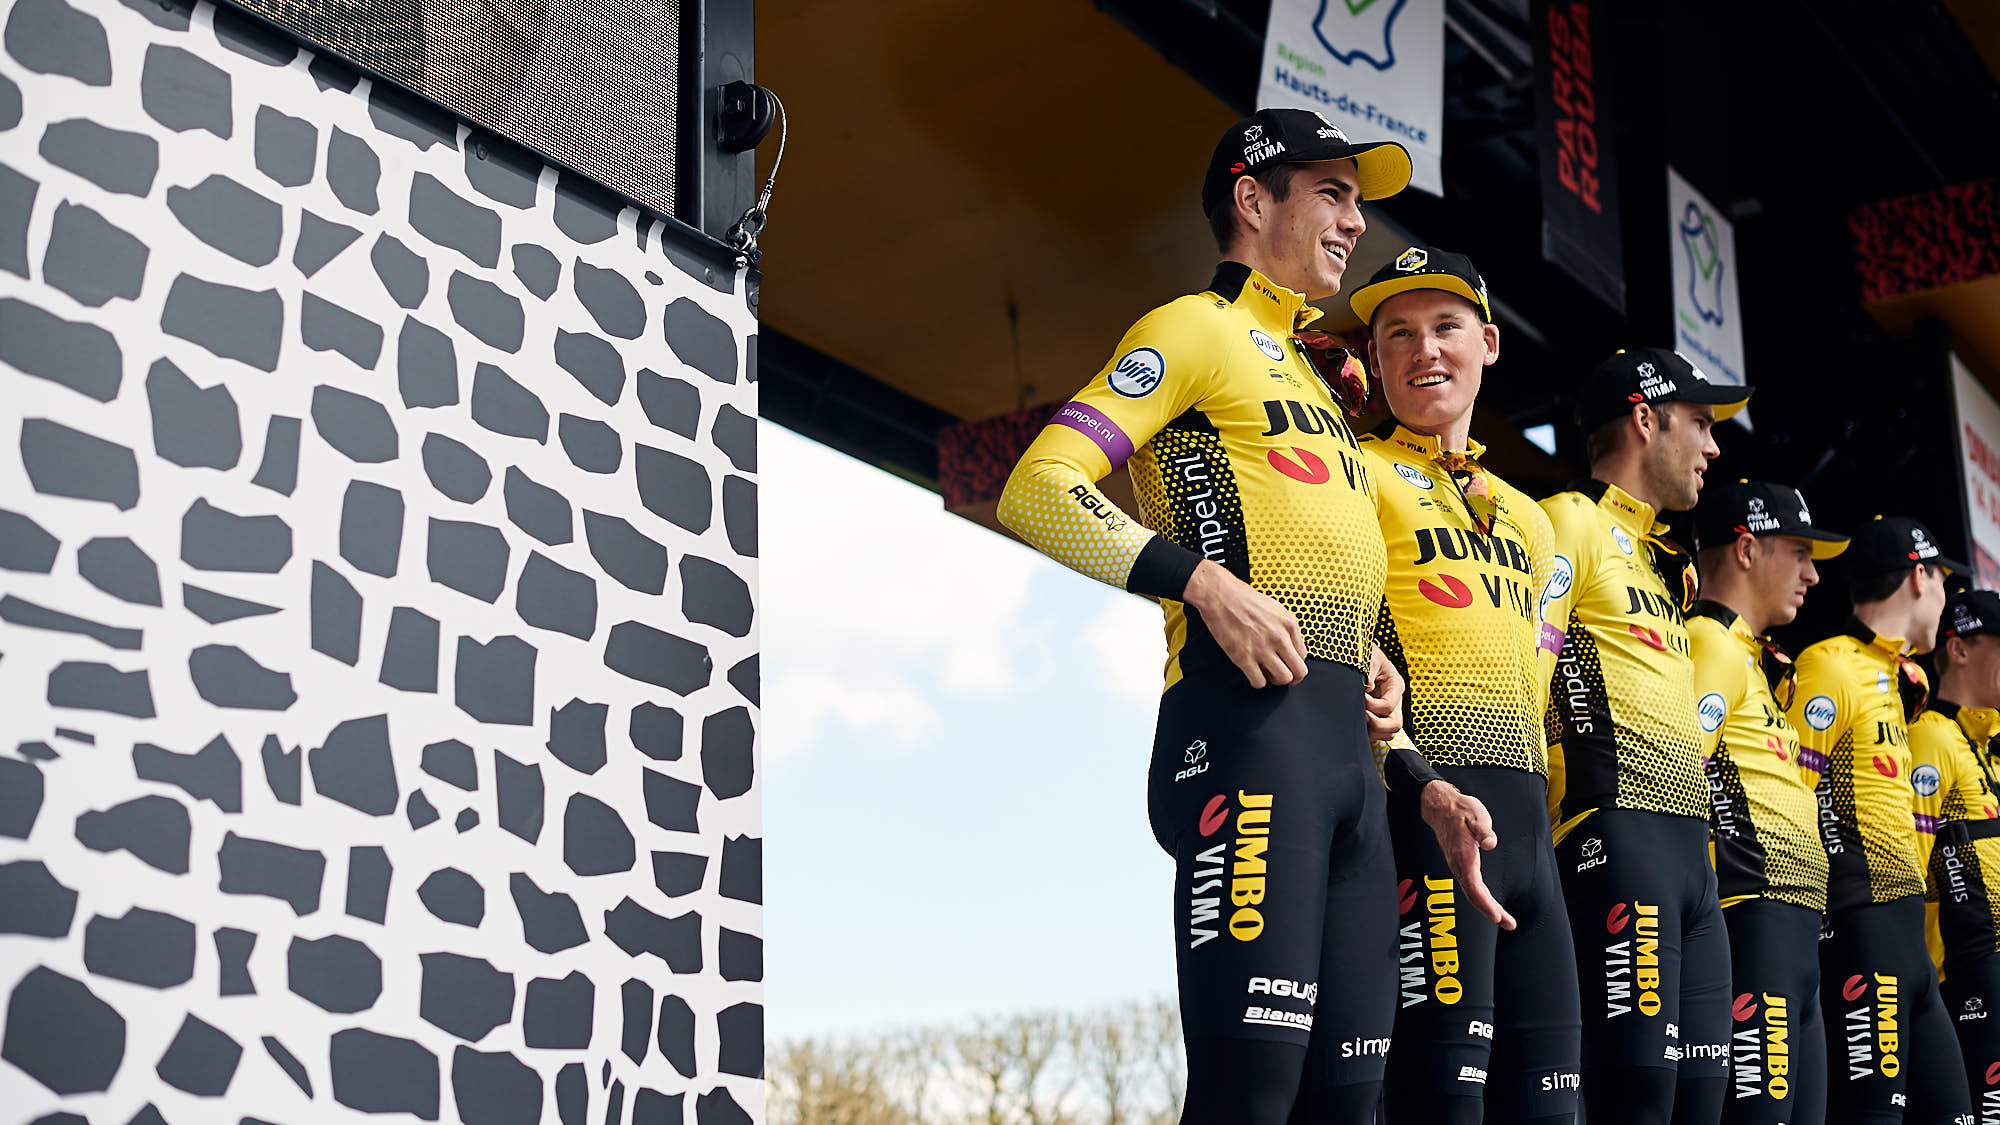 Mike Teunissen and Wout van Aert during Paris-Roubaix team presentations